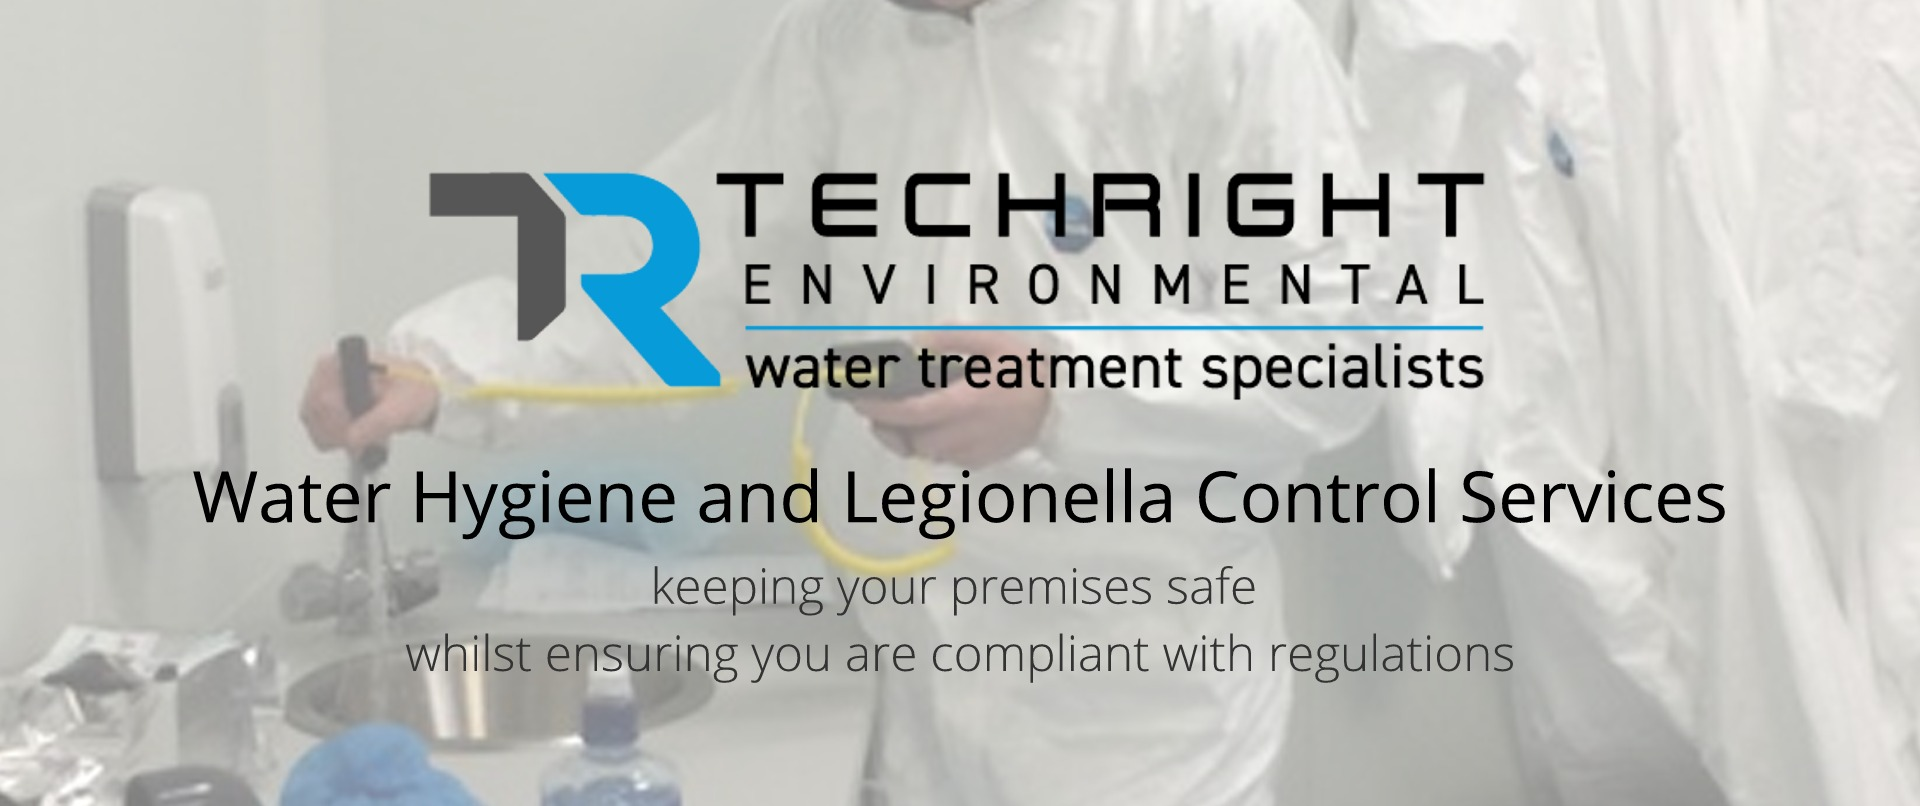 Water Hygiene and Legionella Control Services - keeping your premises safe  whilst ensuring you are compliant with regulations,  - TechRight Environmental, Water Hygiene & Legionella Control Services, Belfast, Northern Ireland